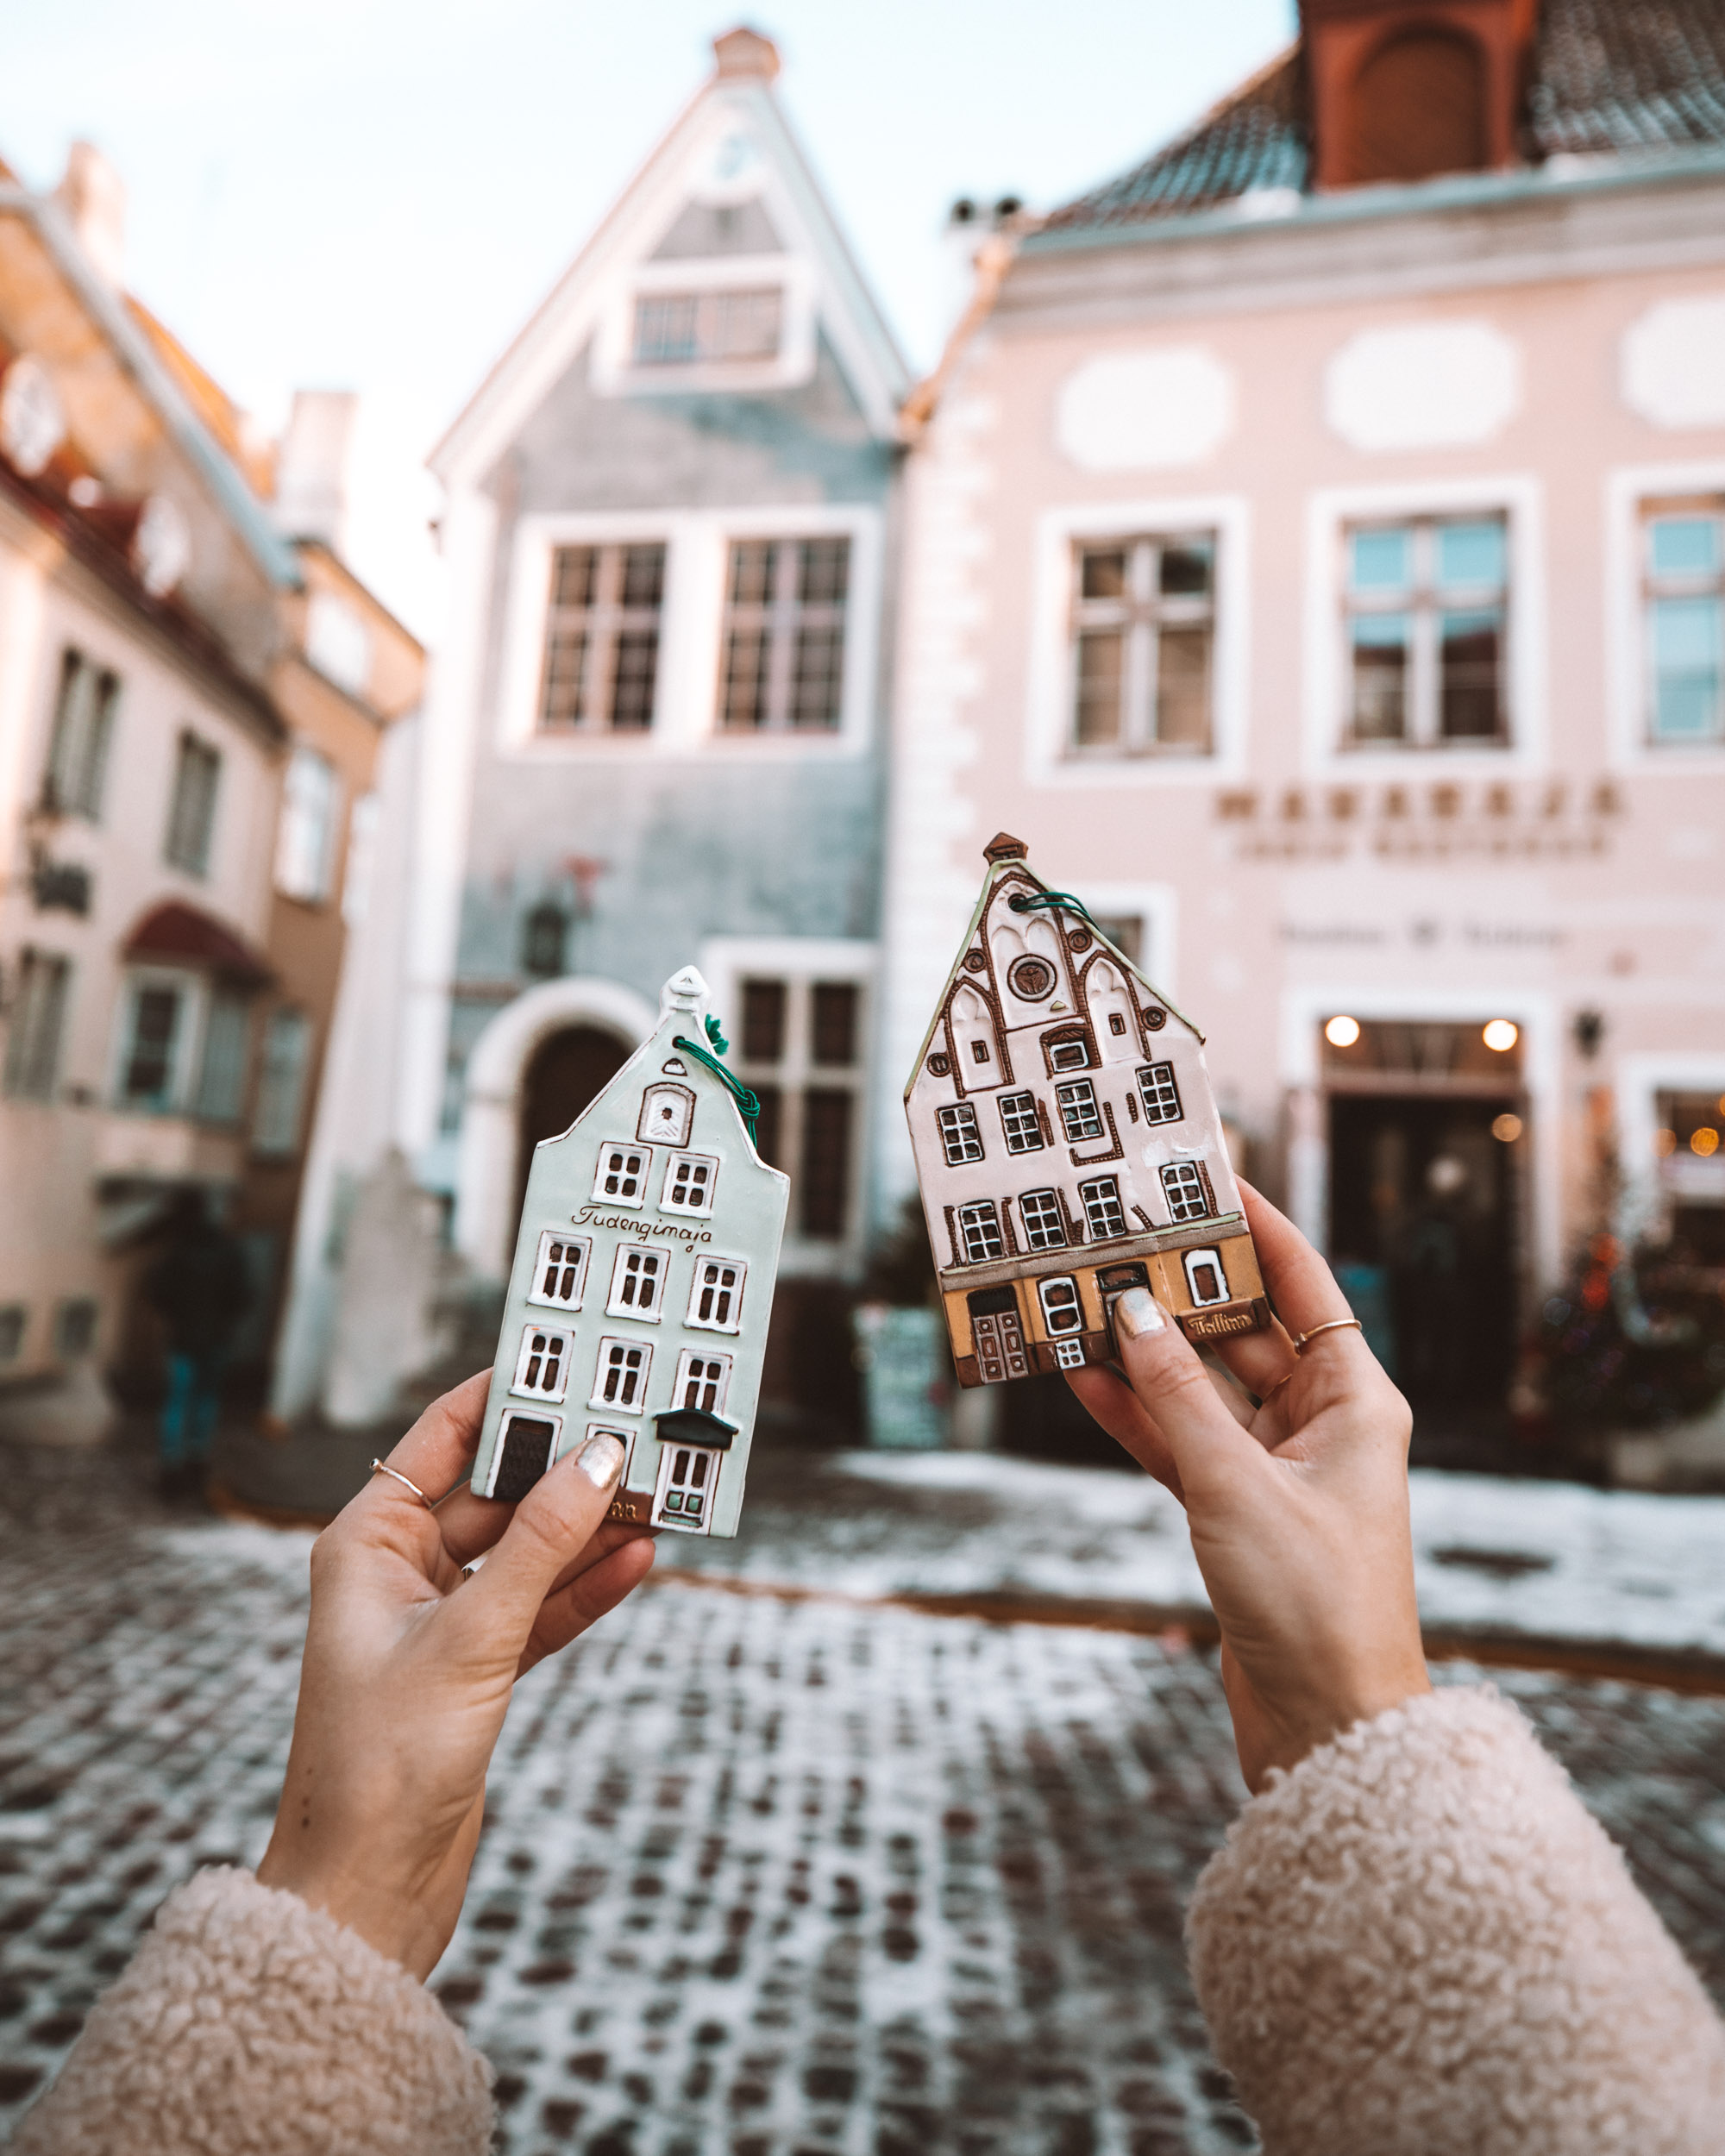 Pastel houses from the Tallinn Christmas Market in Estonia in winter